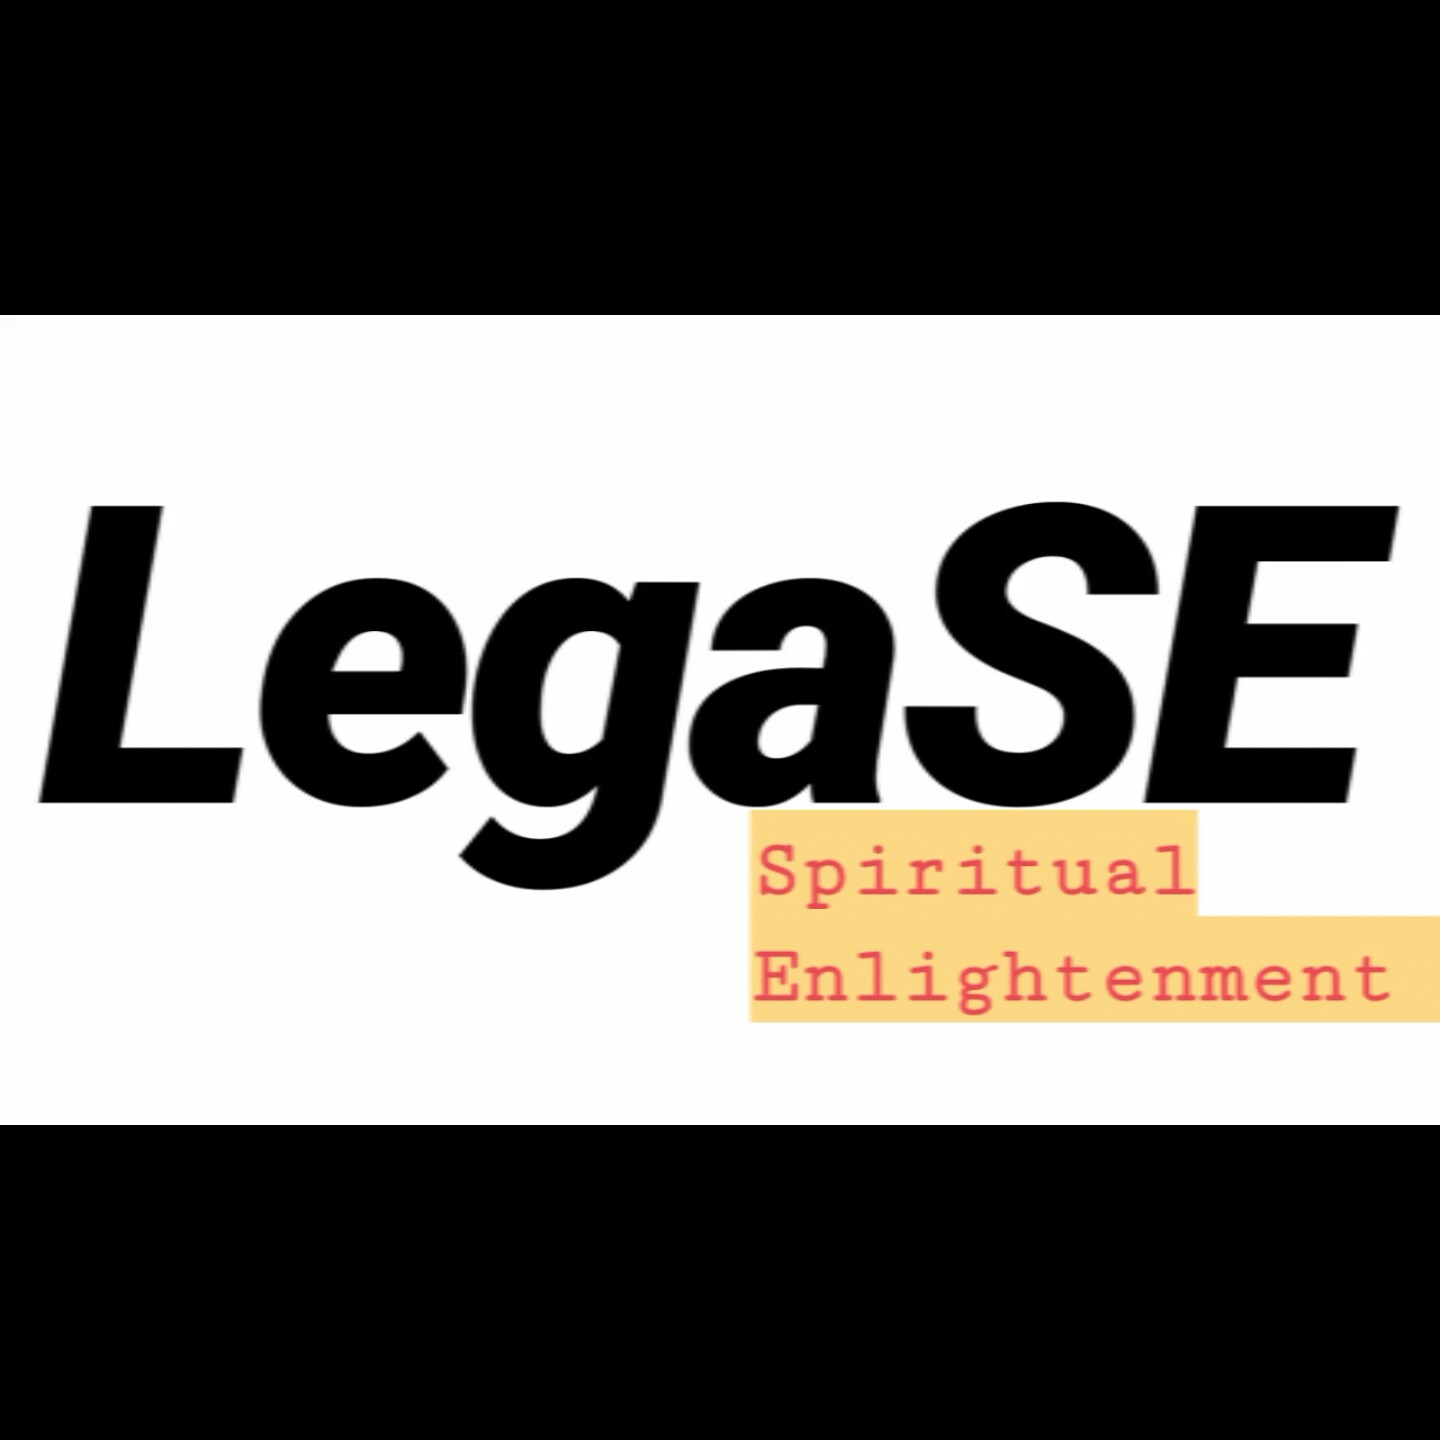 LegaSE  Spiritual Enlightenment